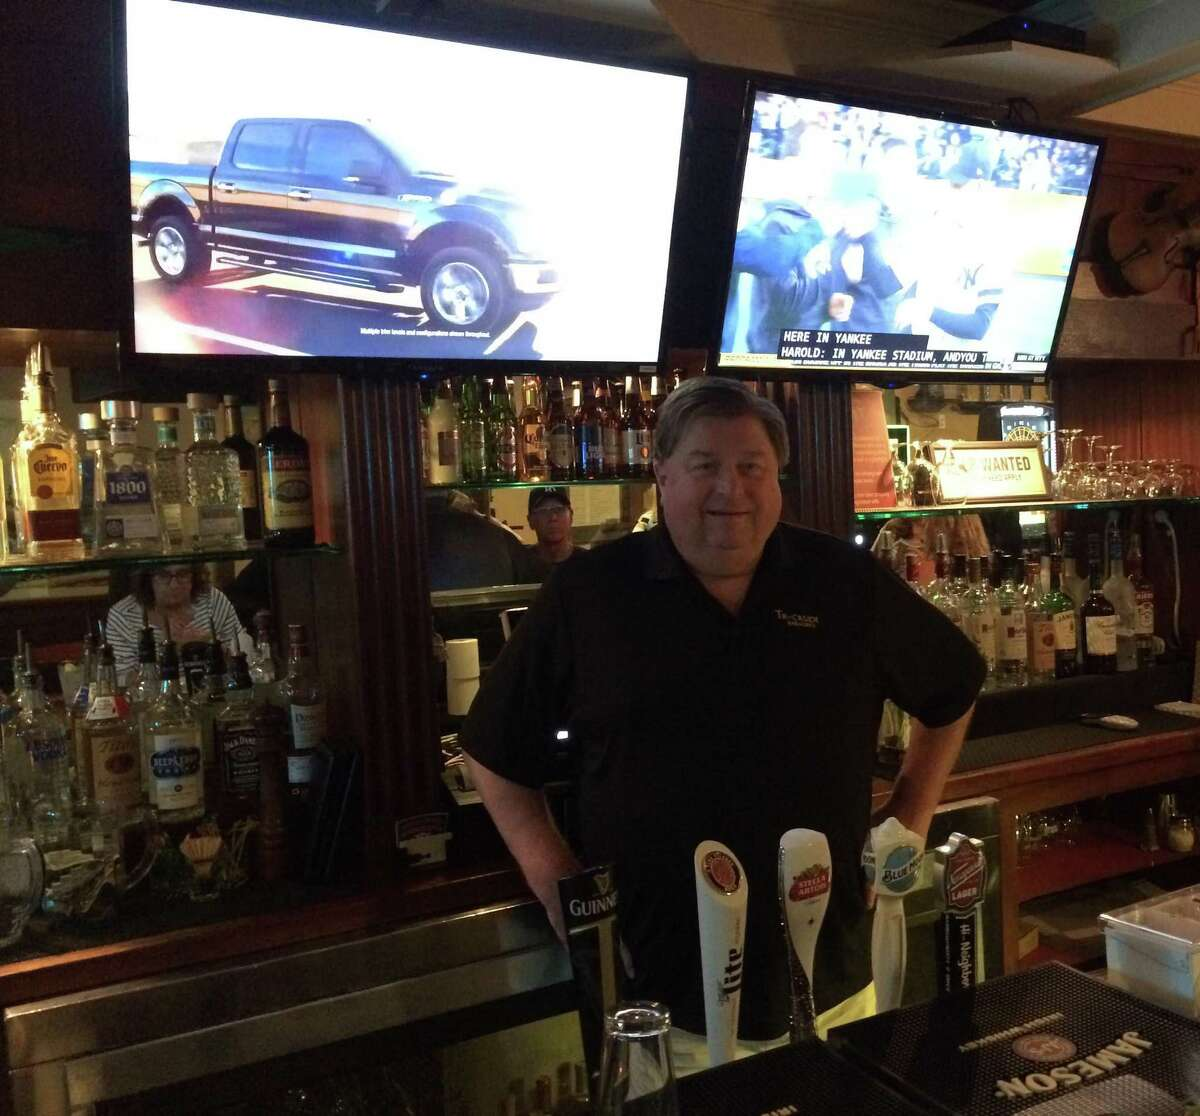 Joe Loughran is owner of the new Trackside Bar & Grill at 920 Hope St., in the Springdale section of Stamford, Conn.